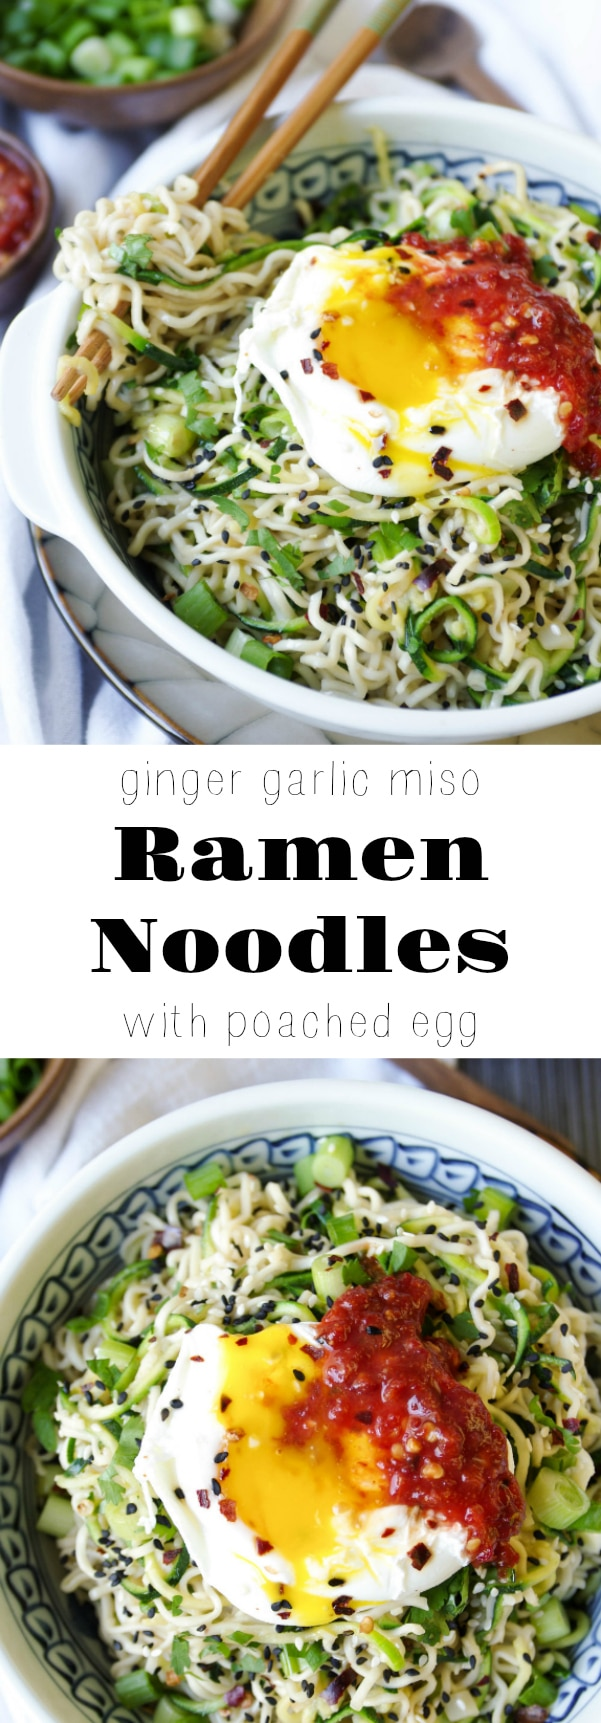 Ginger Garlic Miso Ramen Noodles with Poached Egg - The ...